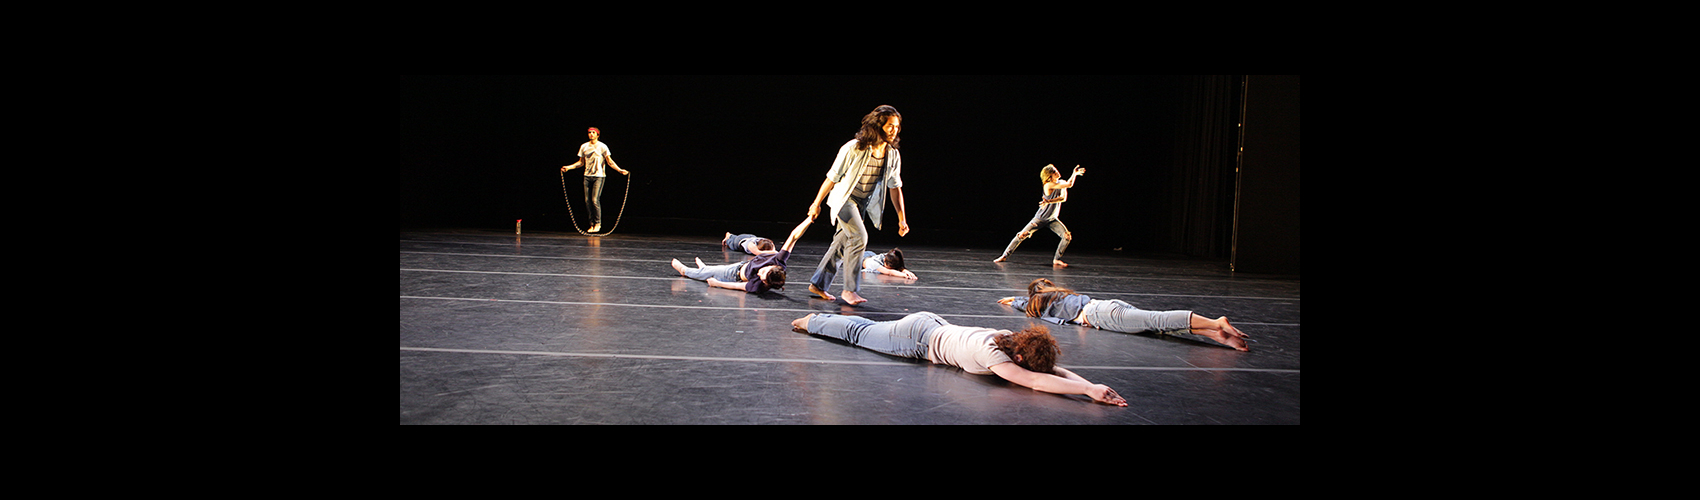 Flocks Are Flying Avalanches — Choreography: Adele Nickel / Photo: Tim Summers